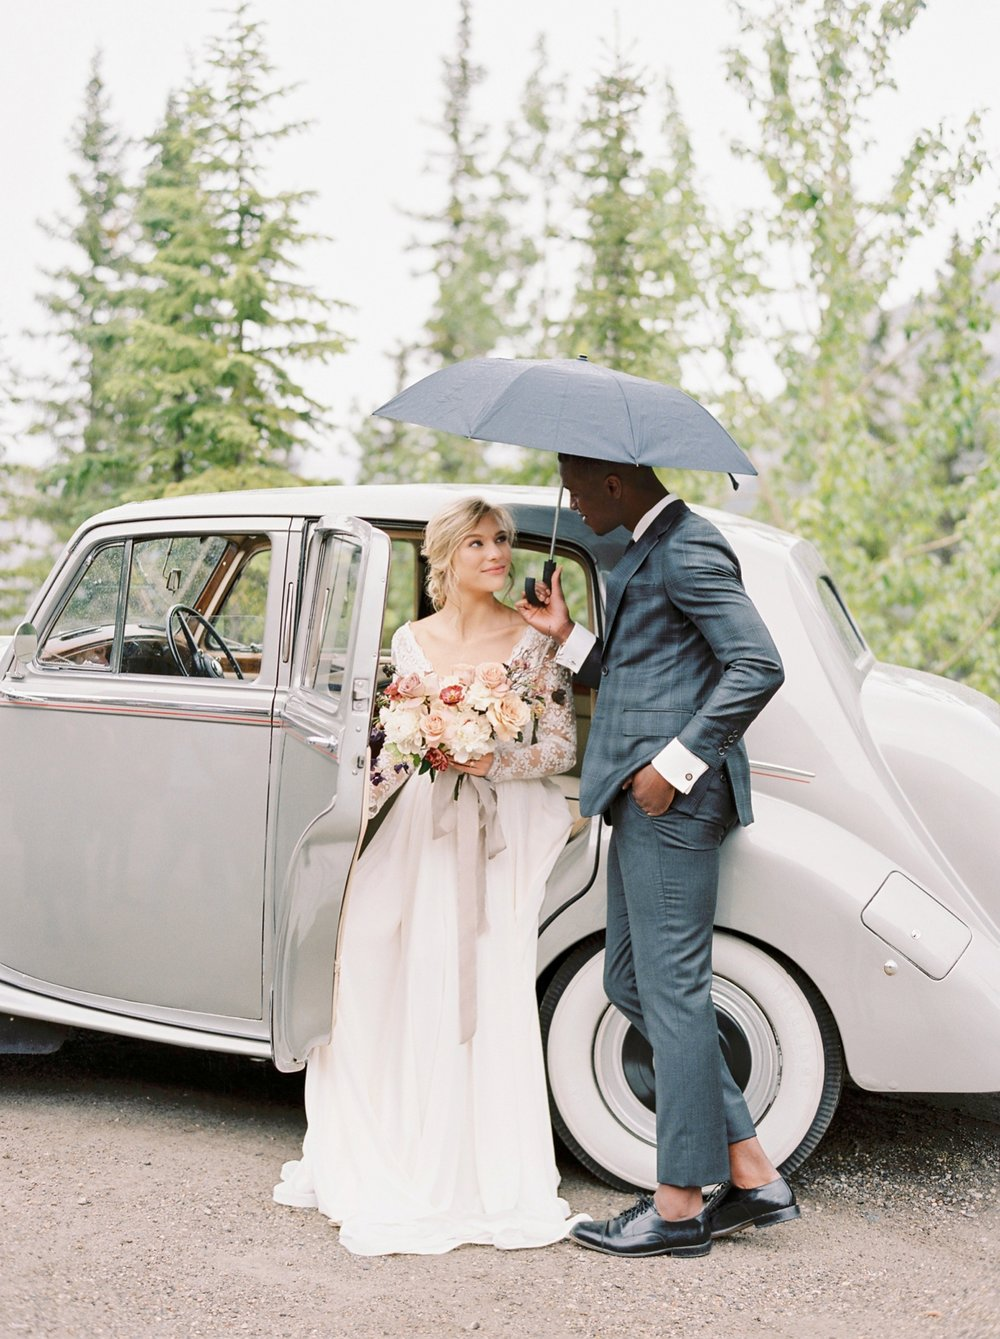 Stacey Foley Design Joy Wed Fine Art Series Photography Workshop | Banff wedding photographers | Rimrock resort wedding | bride and groom portraits with vintage rolls royce banff wedding photographers